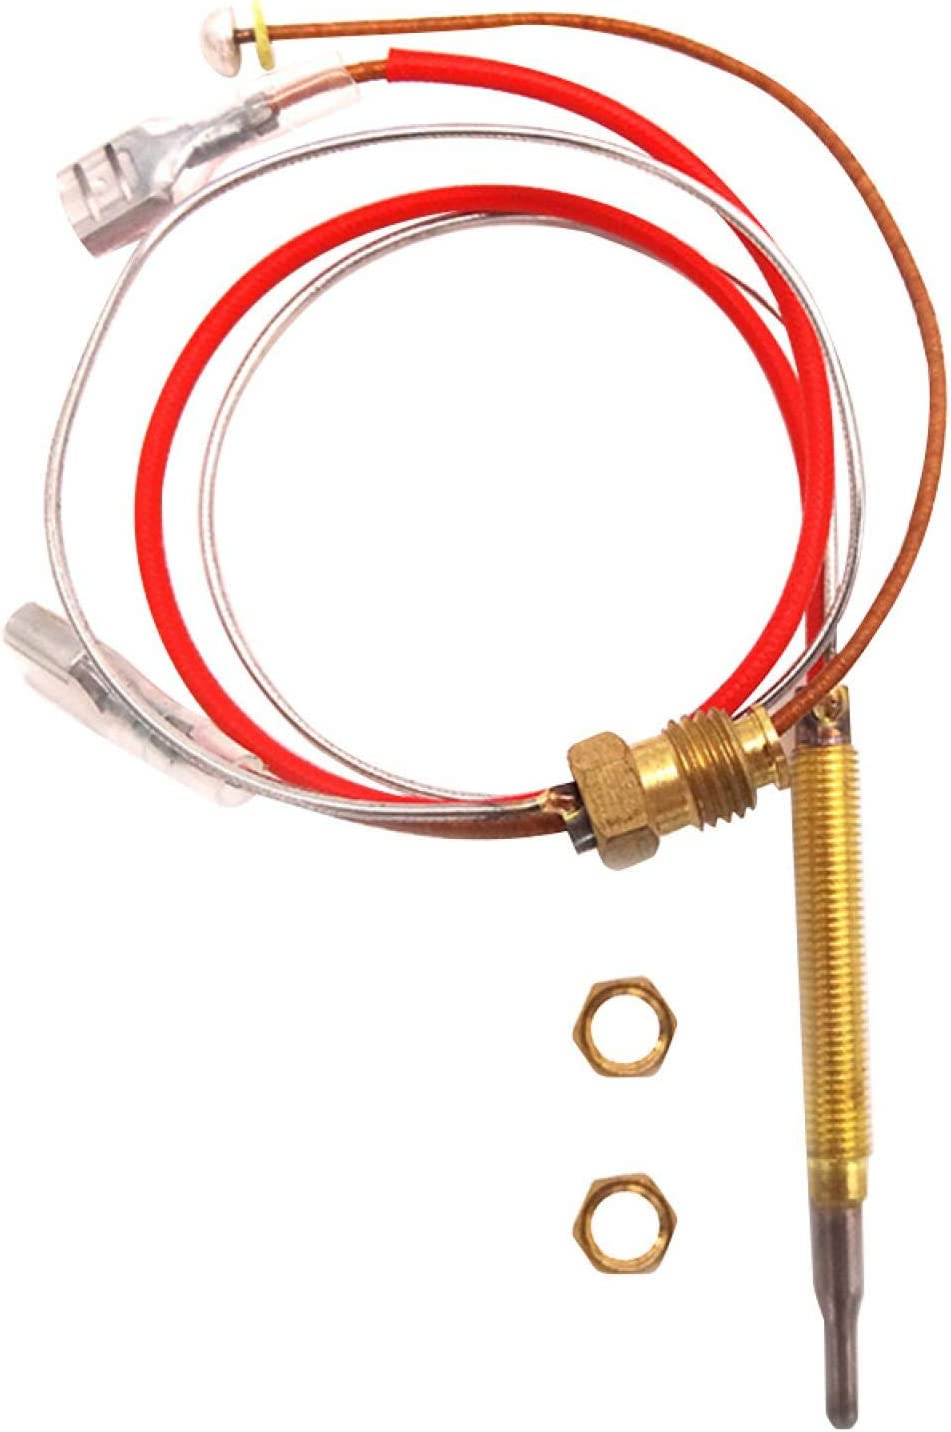 CALIDAKA OUTDOOR PATIO GAS HEATER REPLACEMENT PARTS SAFETY THERMOCOUPLE SENSOR HOME DURABLE EASY INSTALL